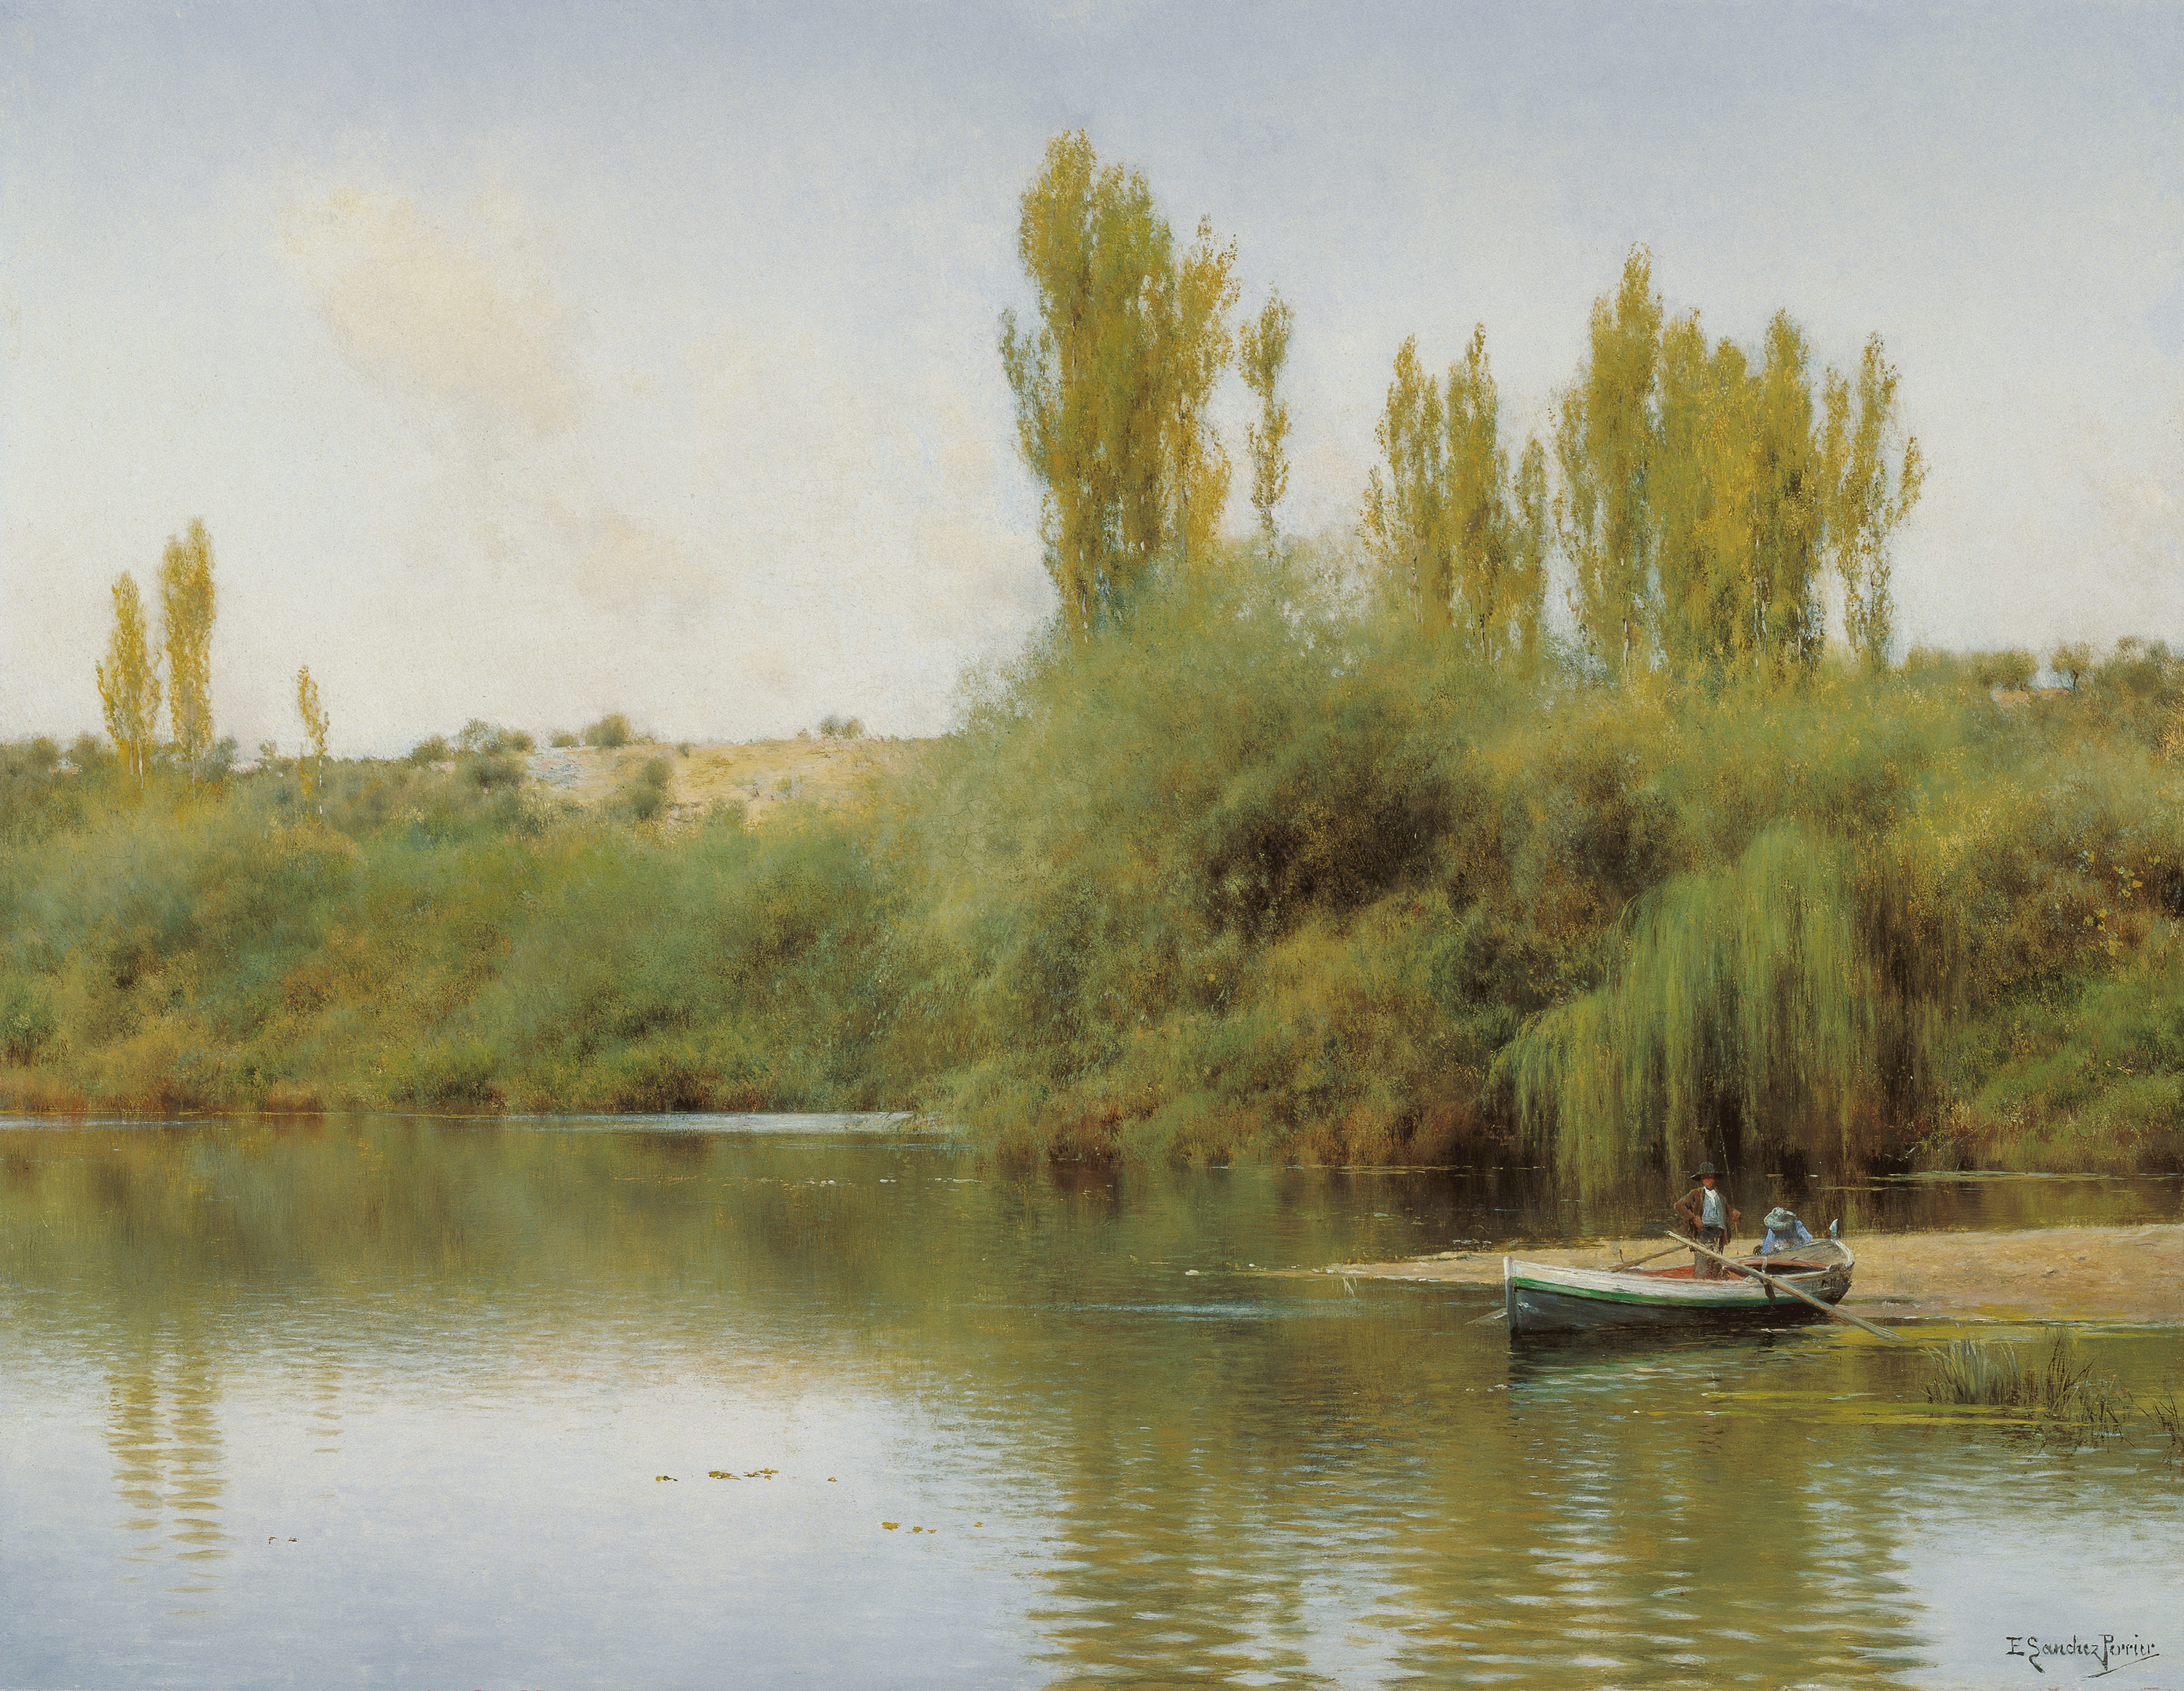 On the Banks of the Guadaíra with a boat